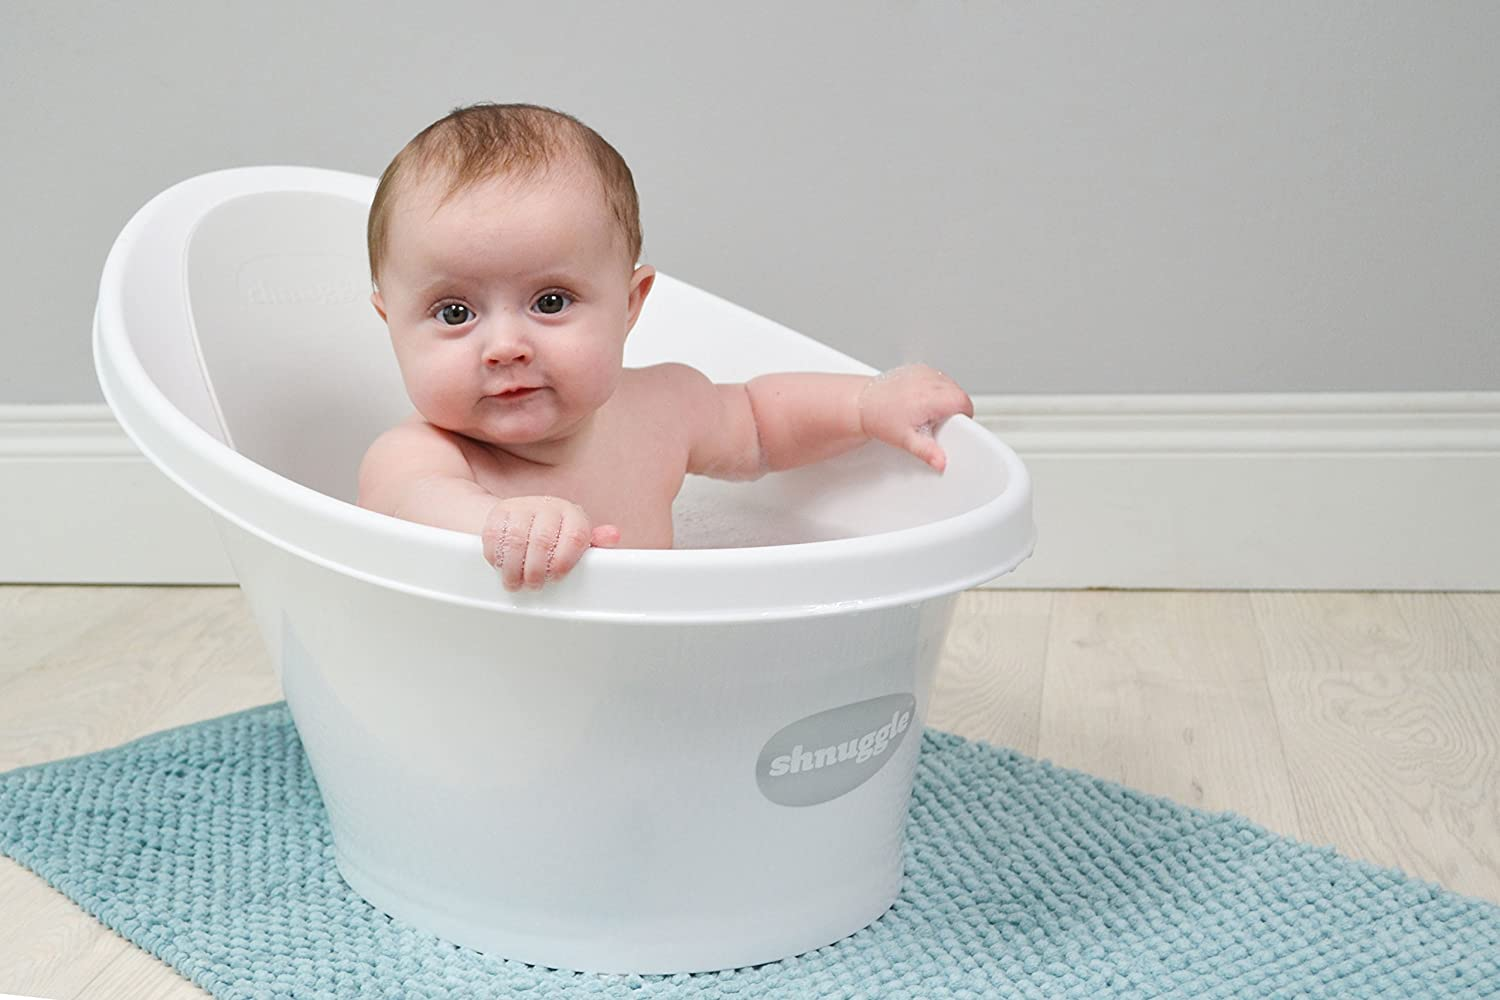 Amazon.com : Shnuggle Baby Bath Tub - Compact Support Seat, Makes ...